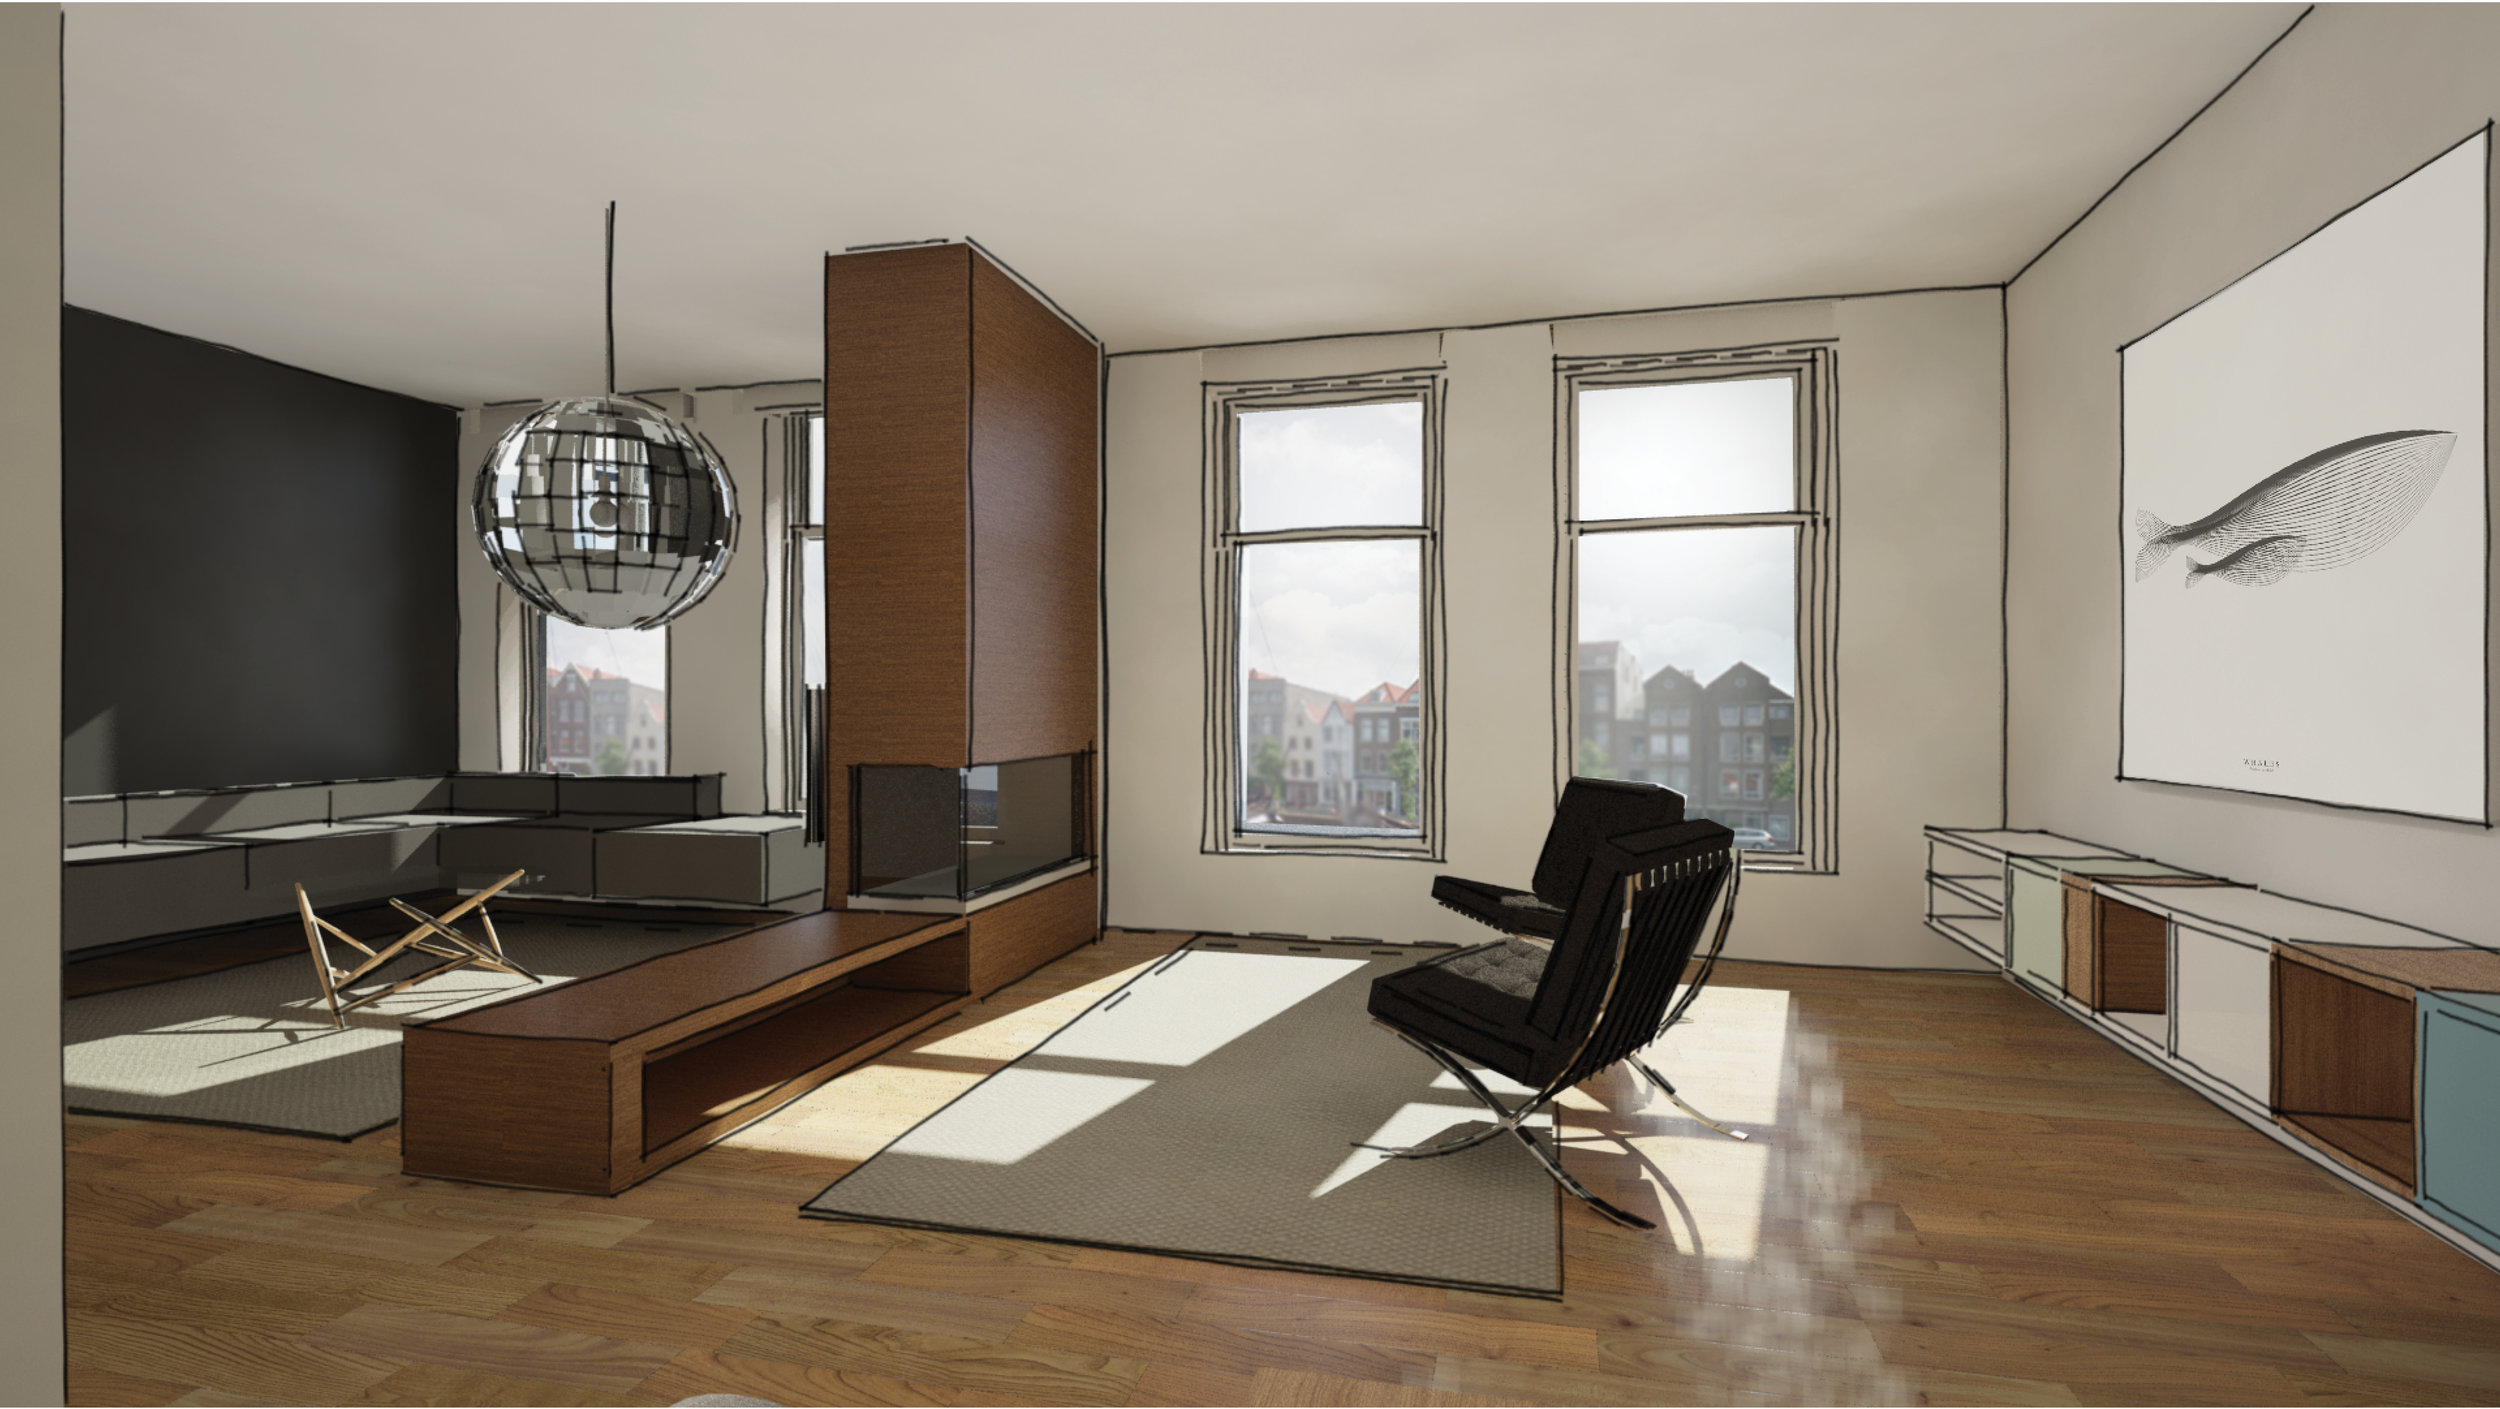 living room of the penthouse with the fire place serving as a dividing element between two different seating area's